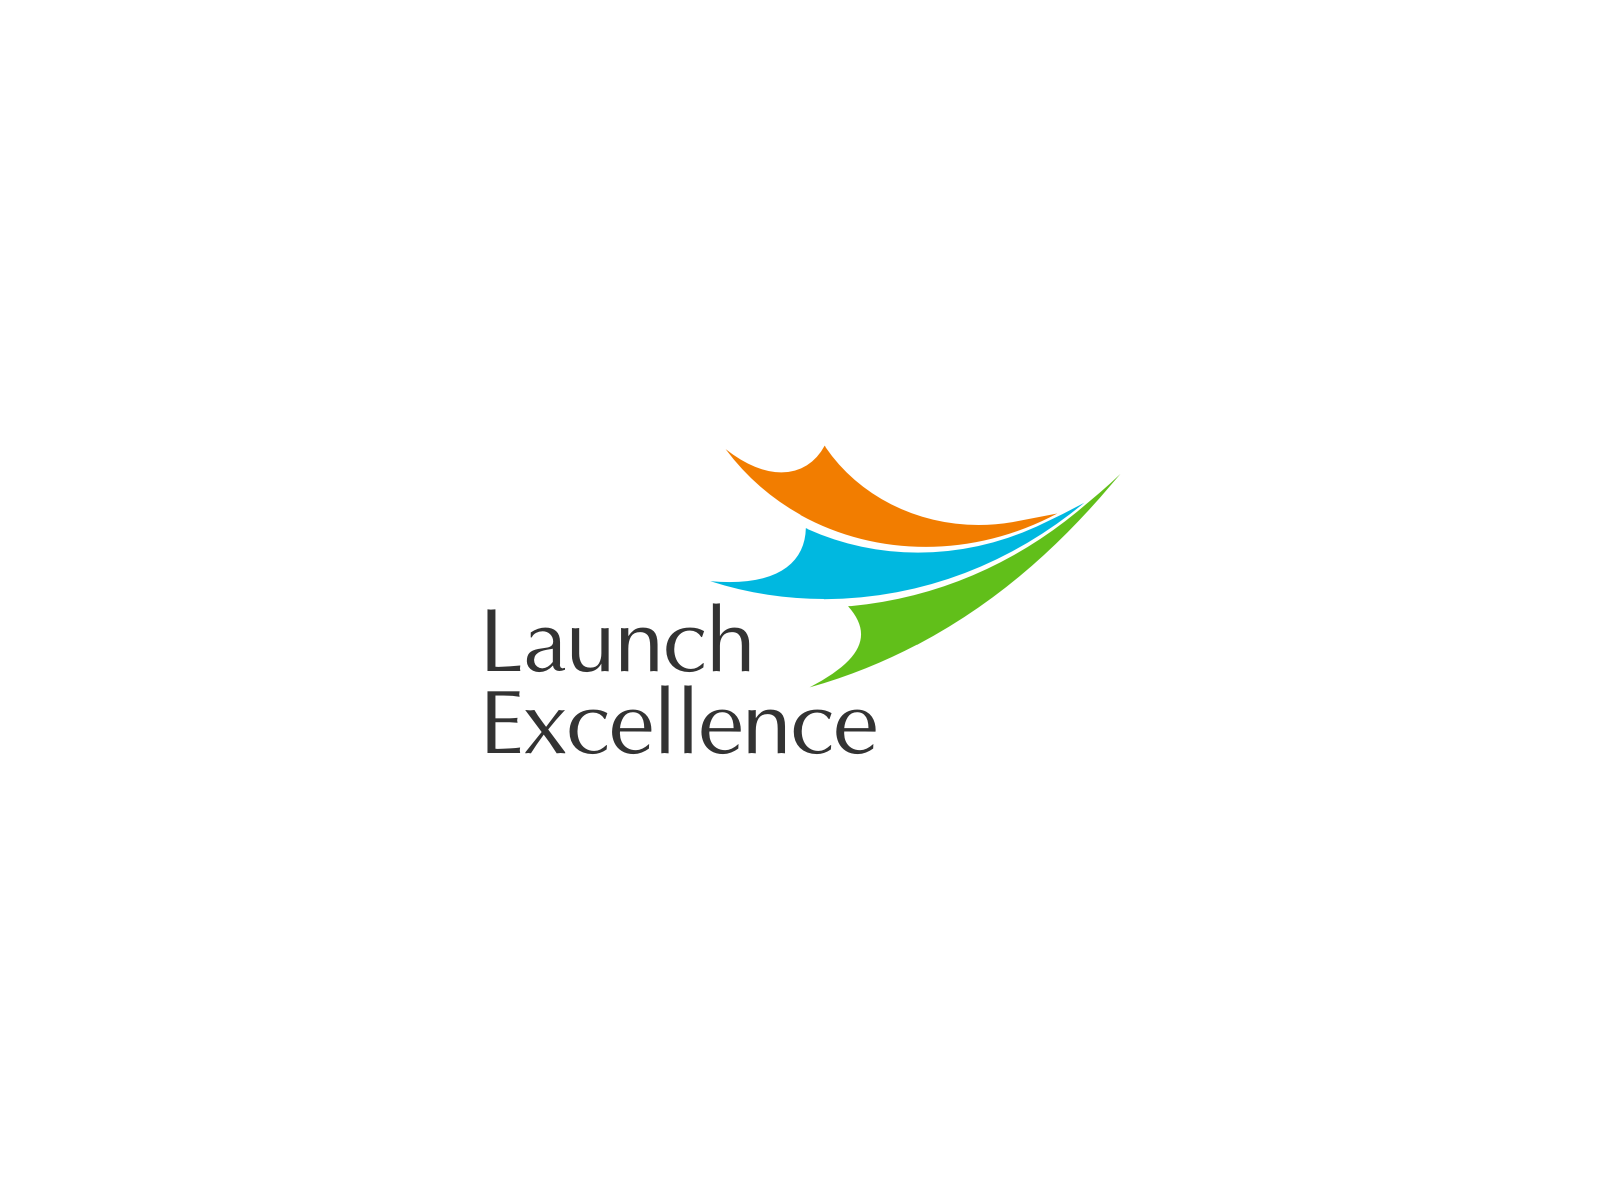 Help Launch Excellence with a new logo